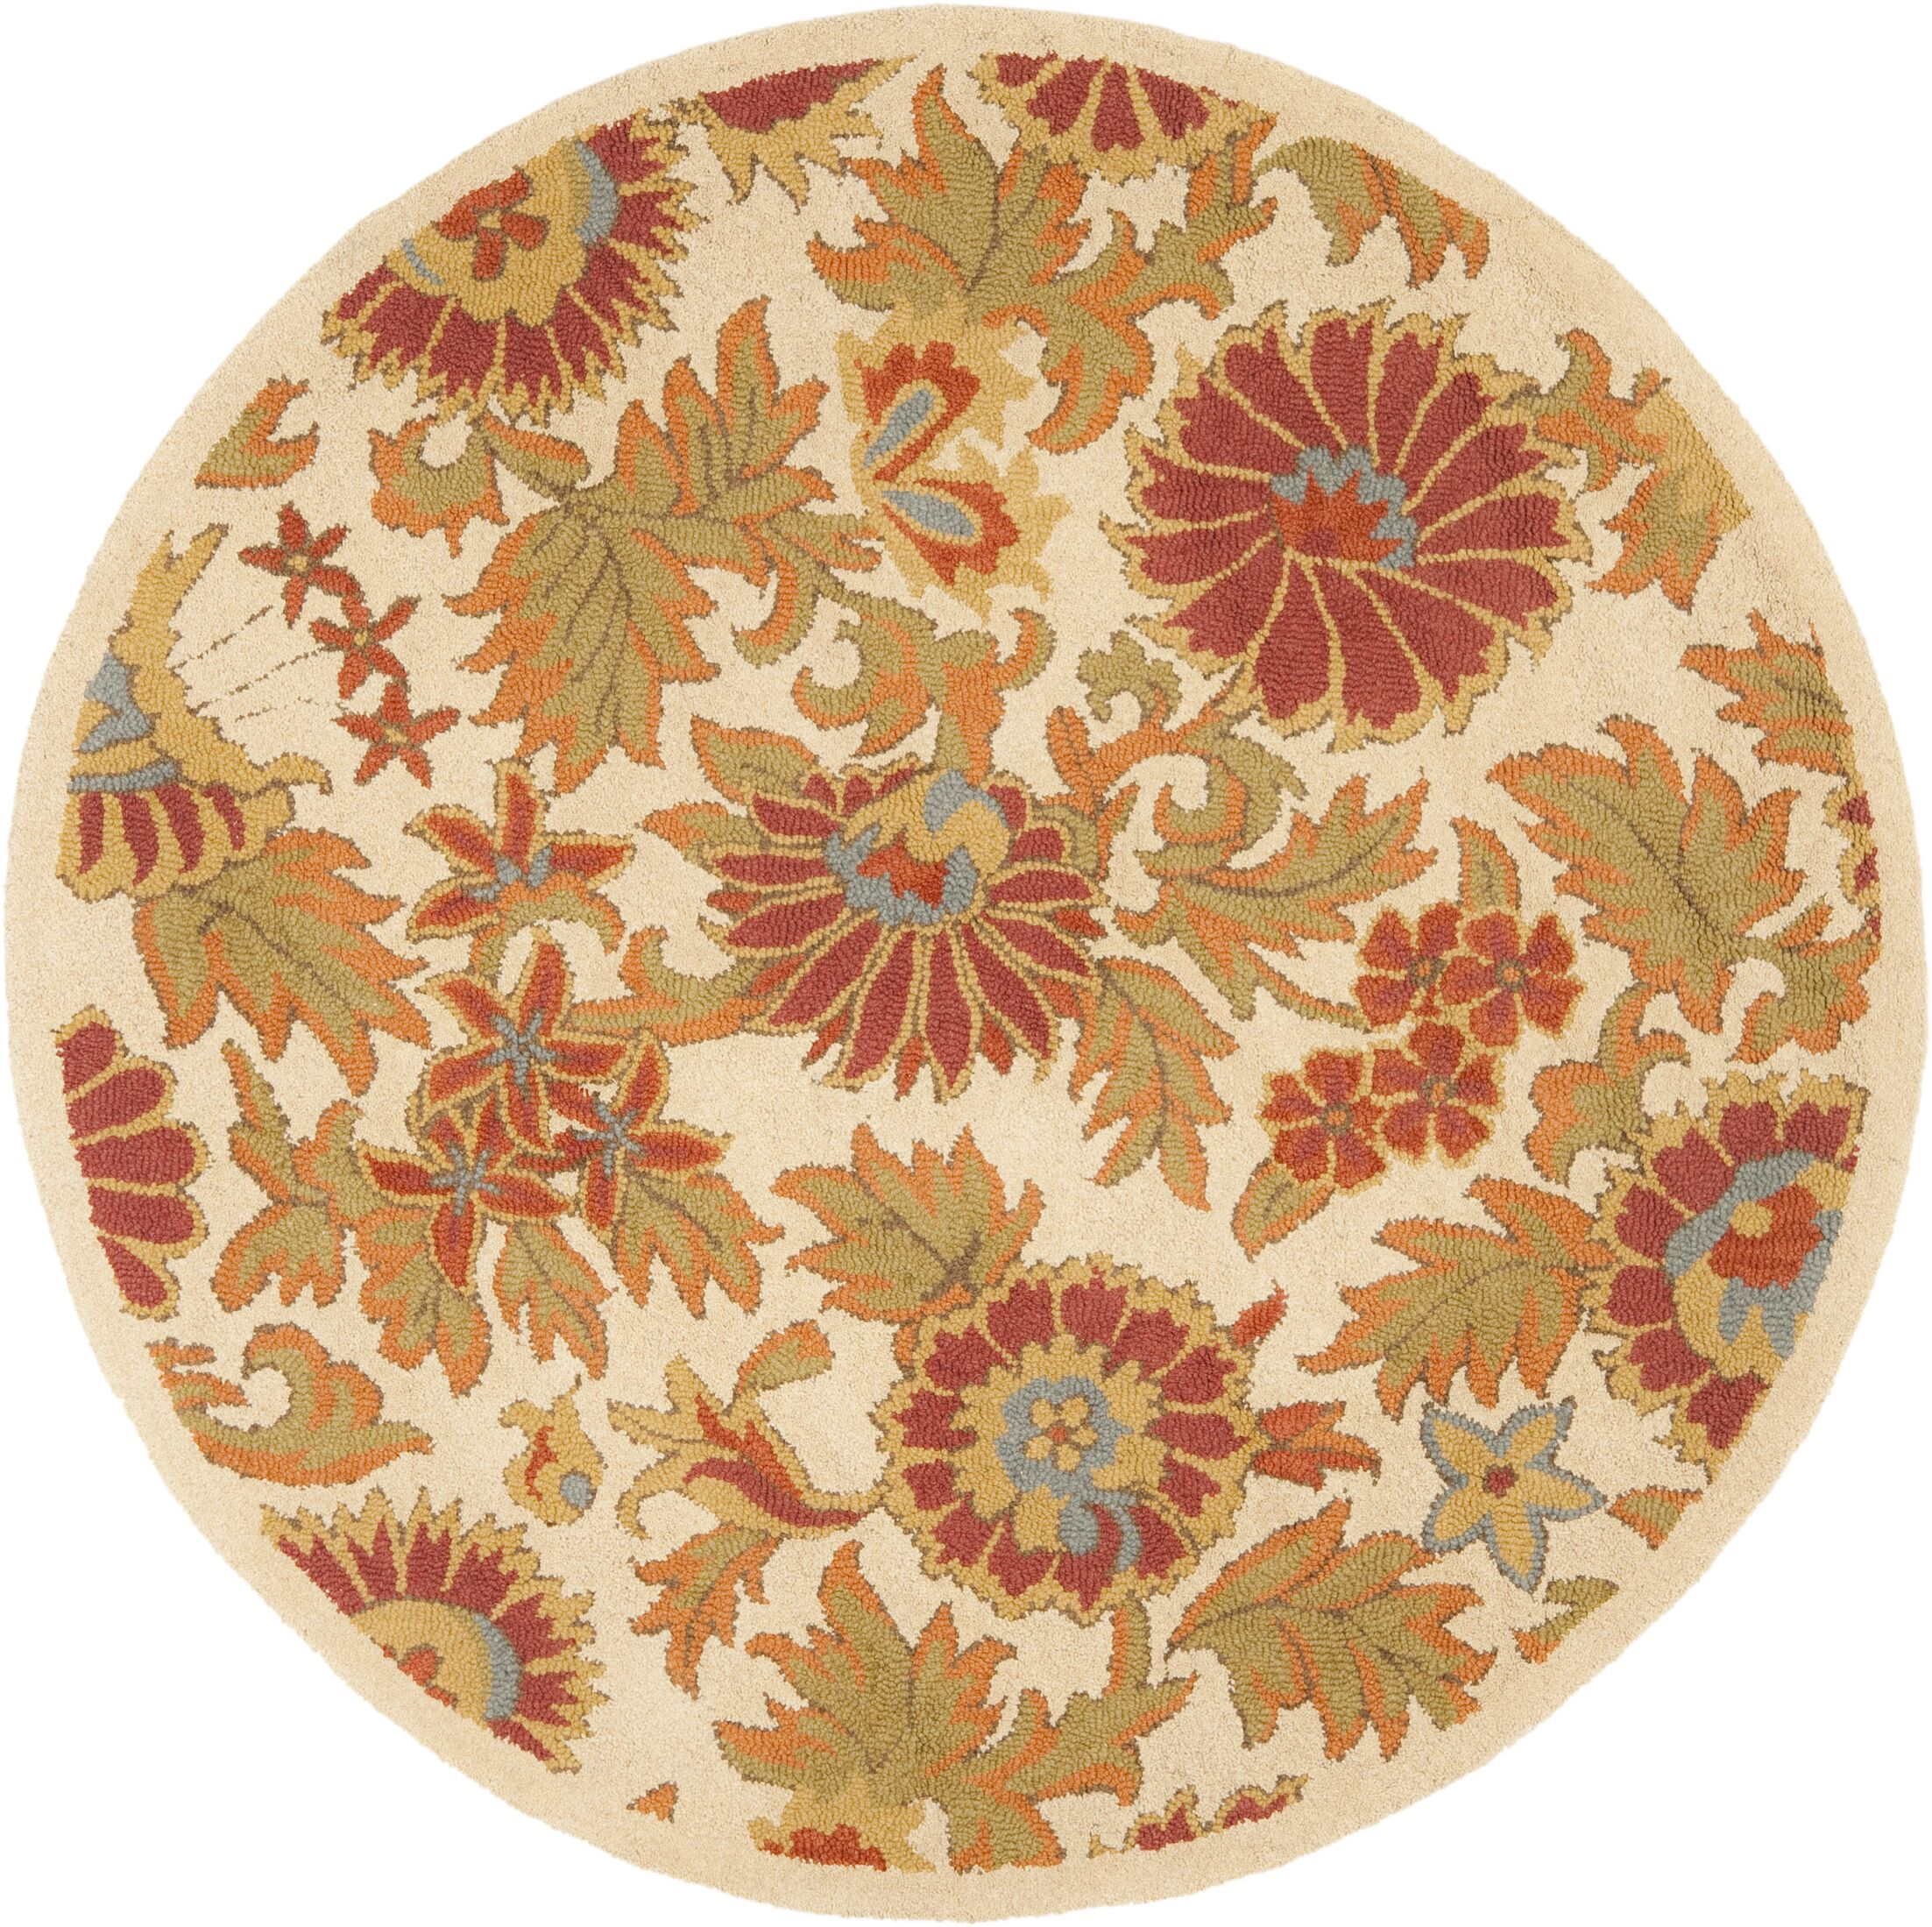 Bradwood Hand-Woven Wool Ivory/Red Area Rug Rug Size: Round 4'